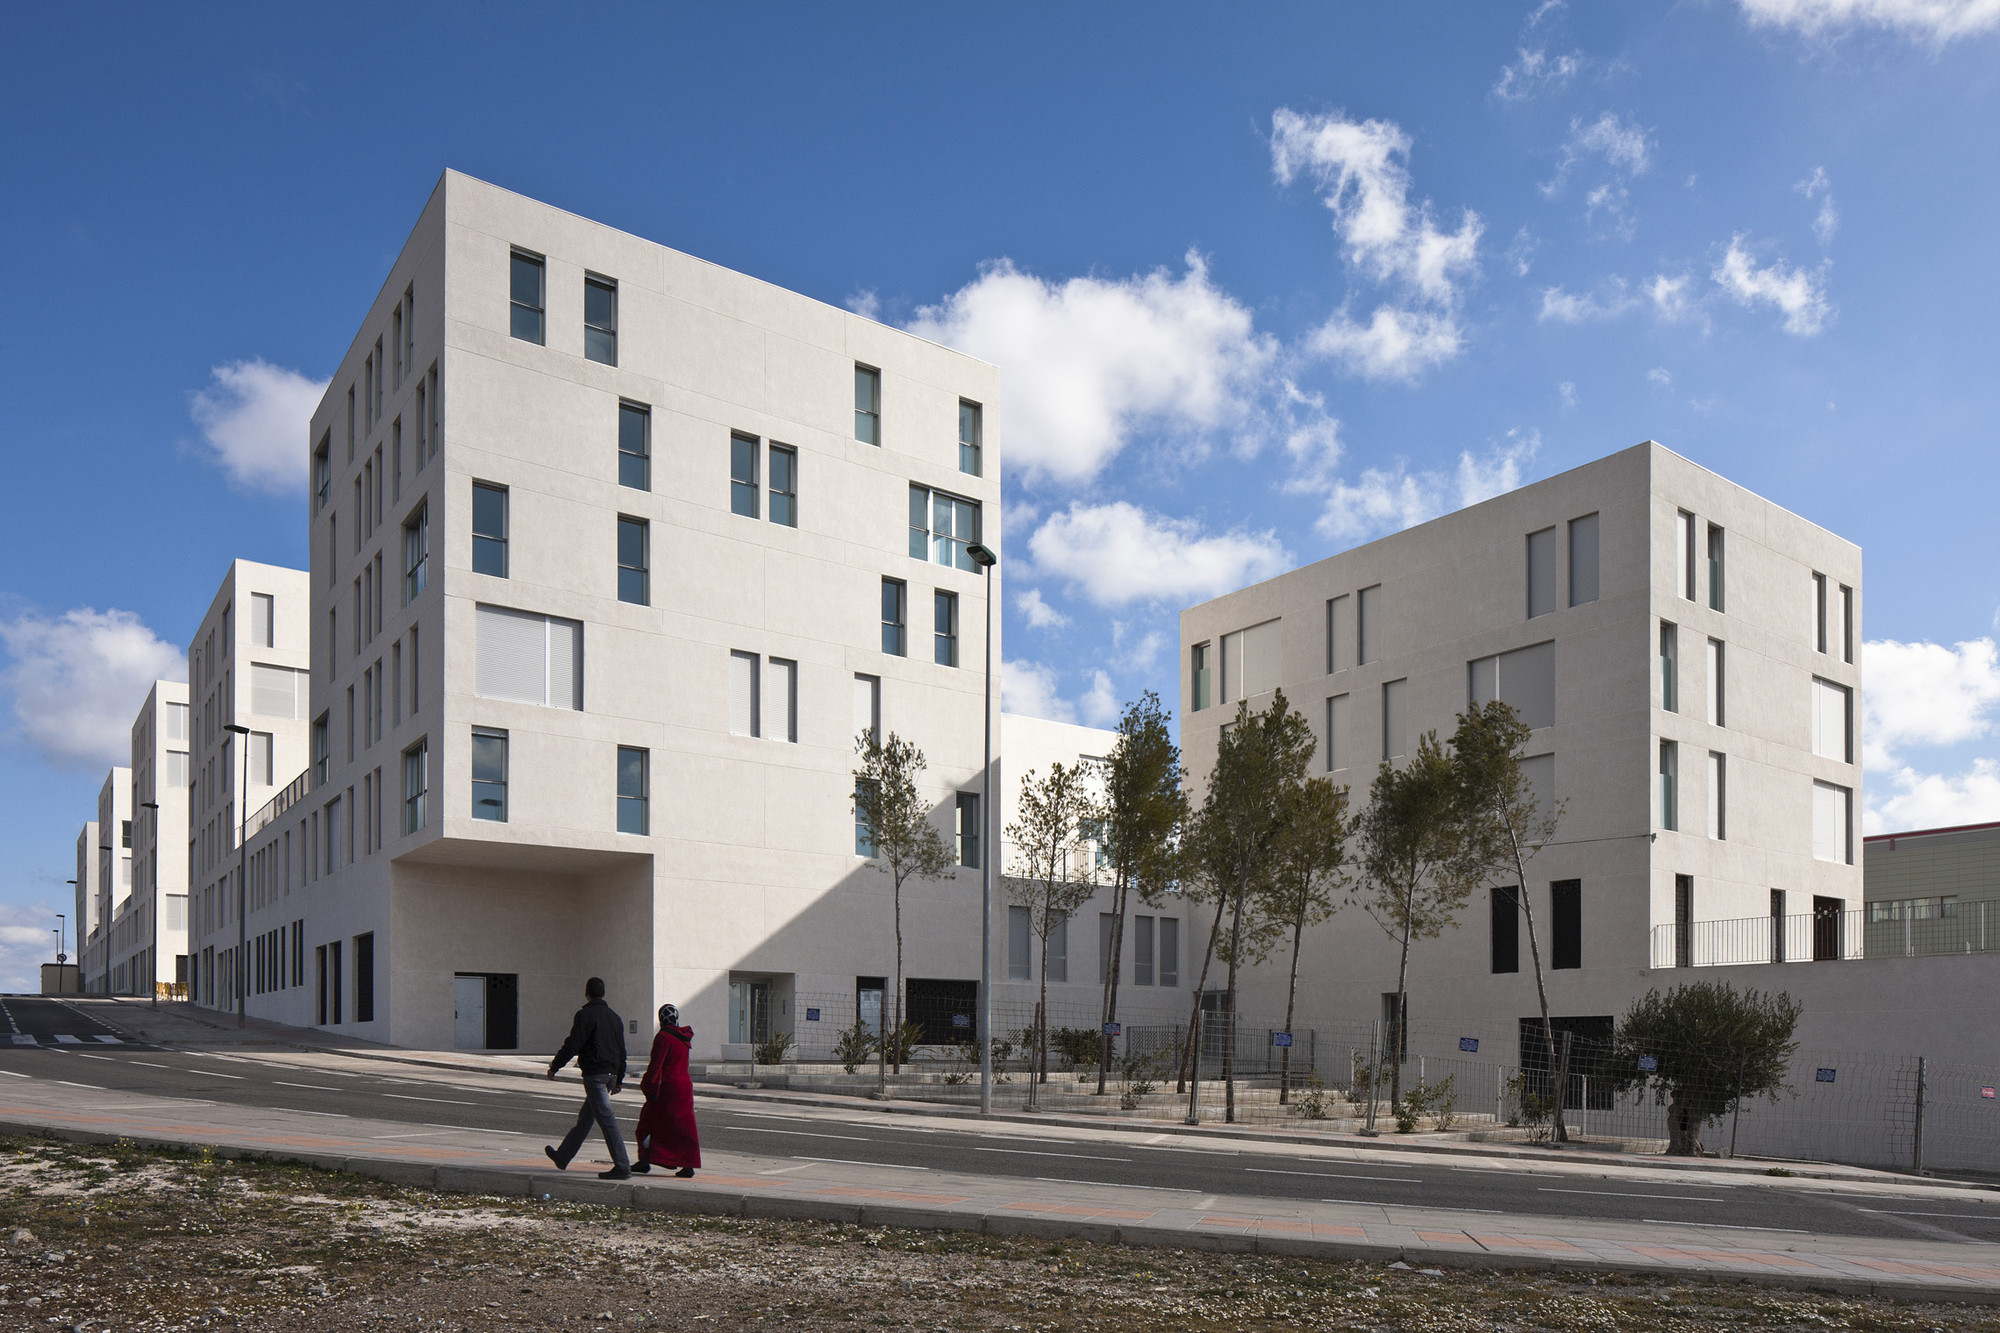 Social Housing In Ceuta IND Inter National Design ArchDaily